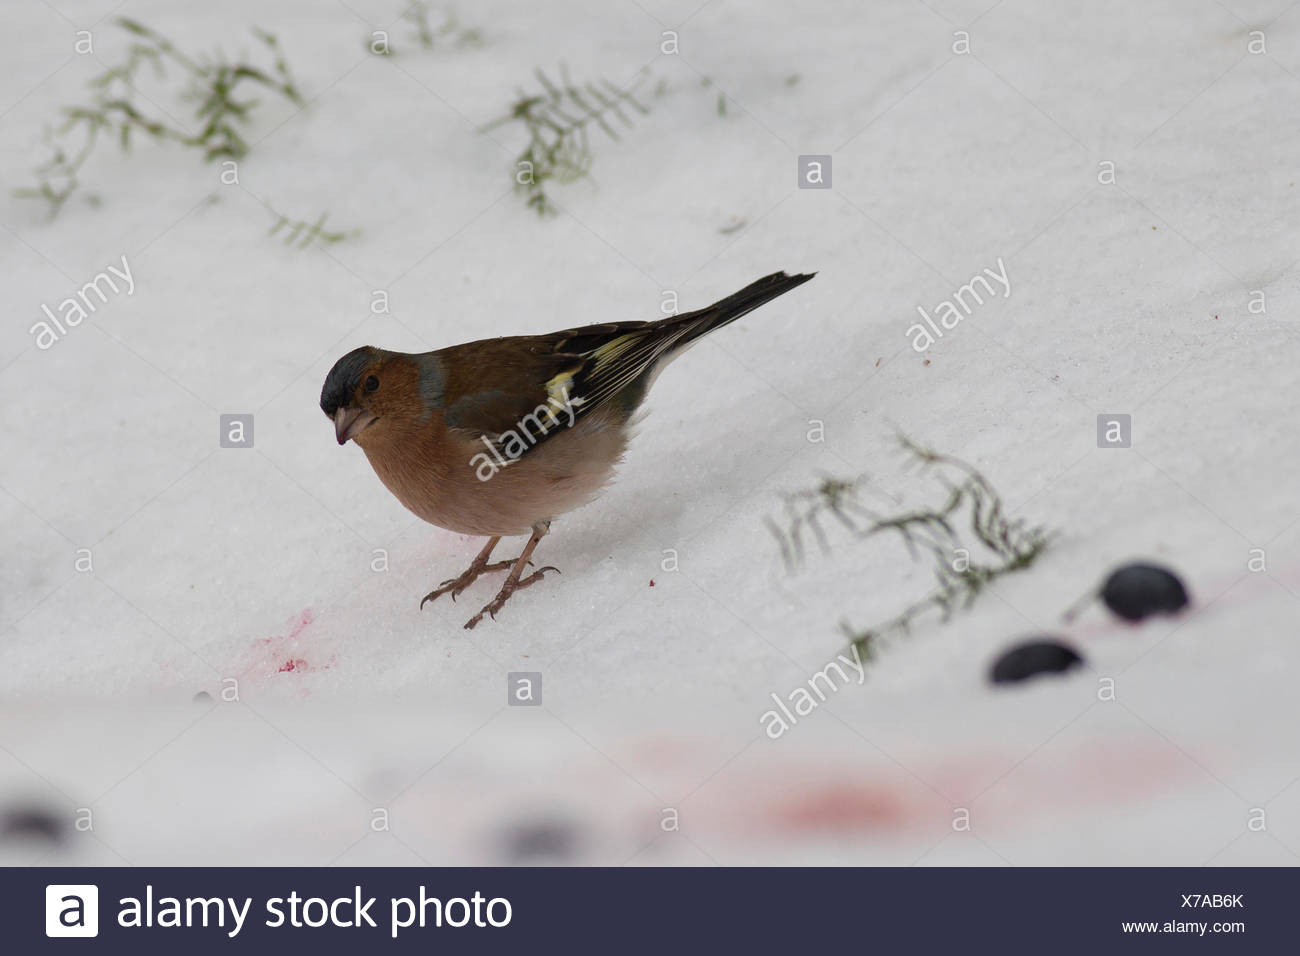 Chaffinch. Male chaffinch (Fringilla coelebs) in the snow. Chaffinches are non-migratory birds that eat mainly seeds. They are f - Stock Image